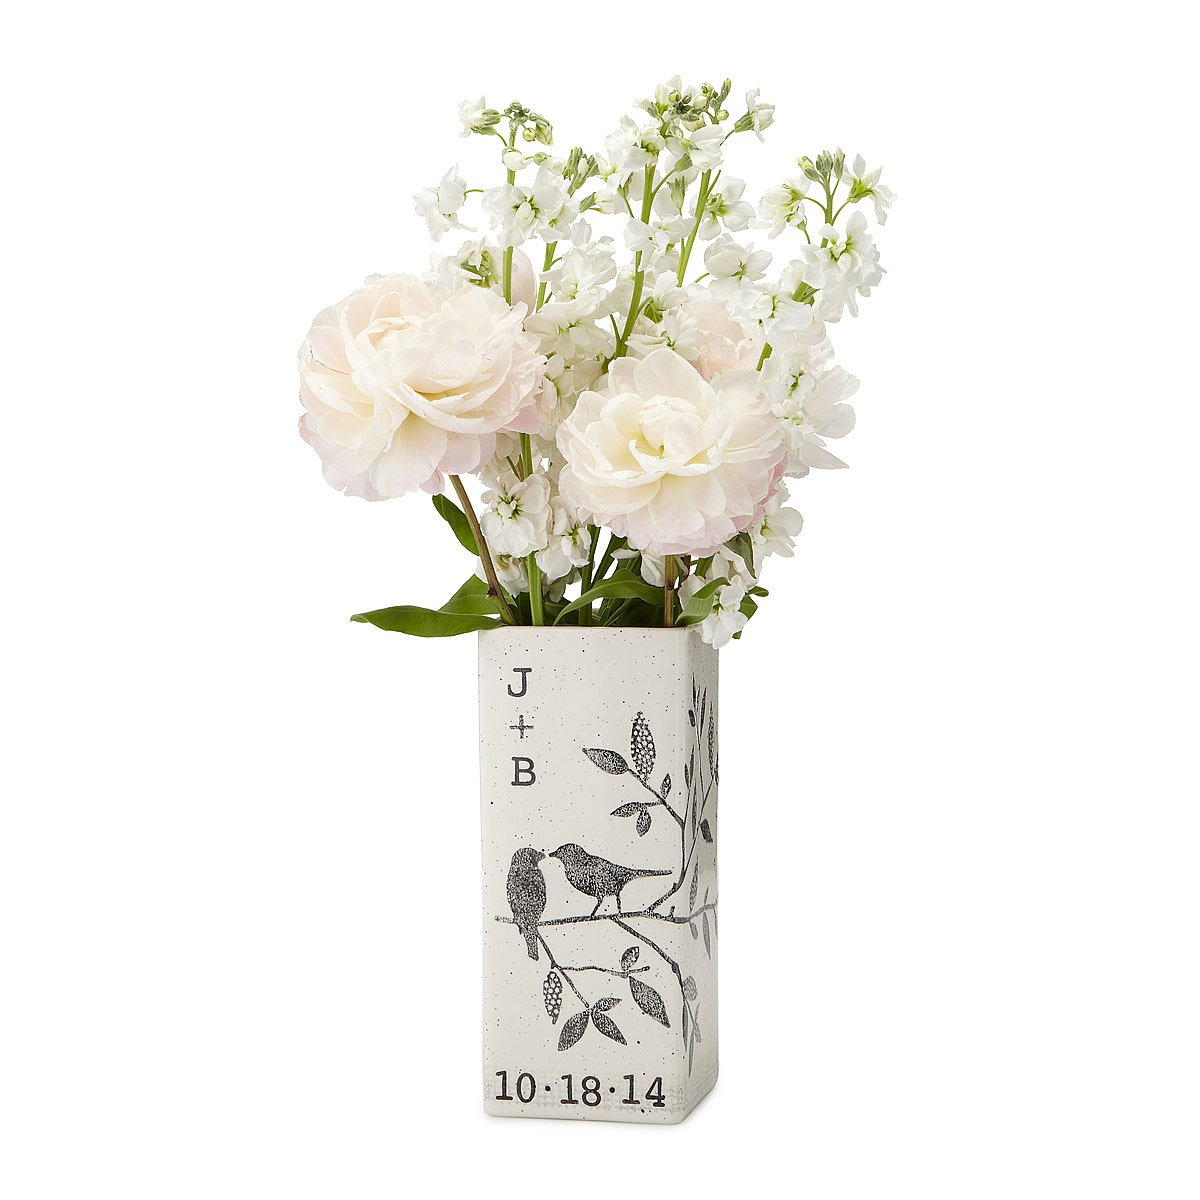 fullxfull personalized il gift listing or housewarming zoom client wedding vase